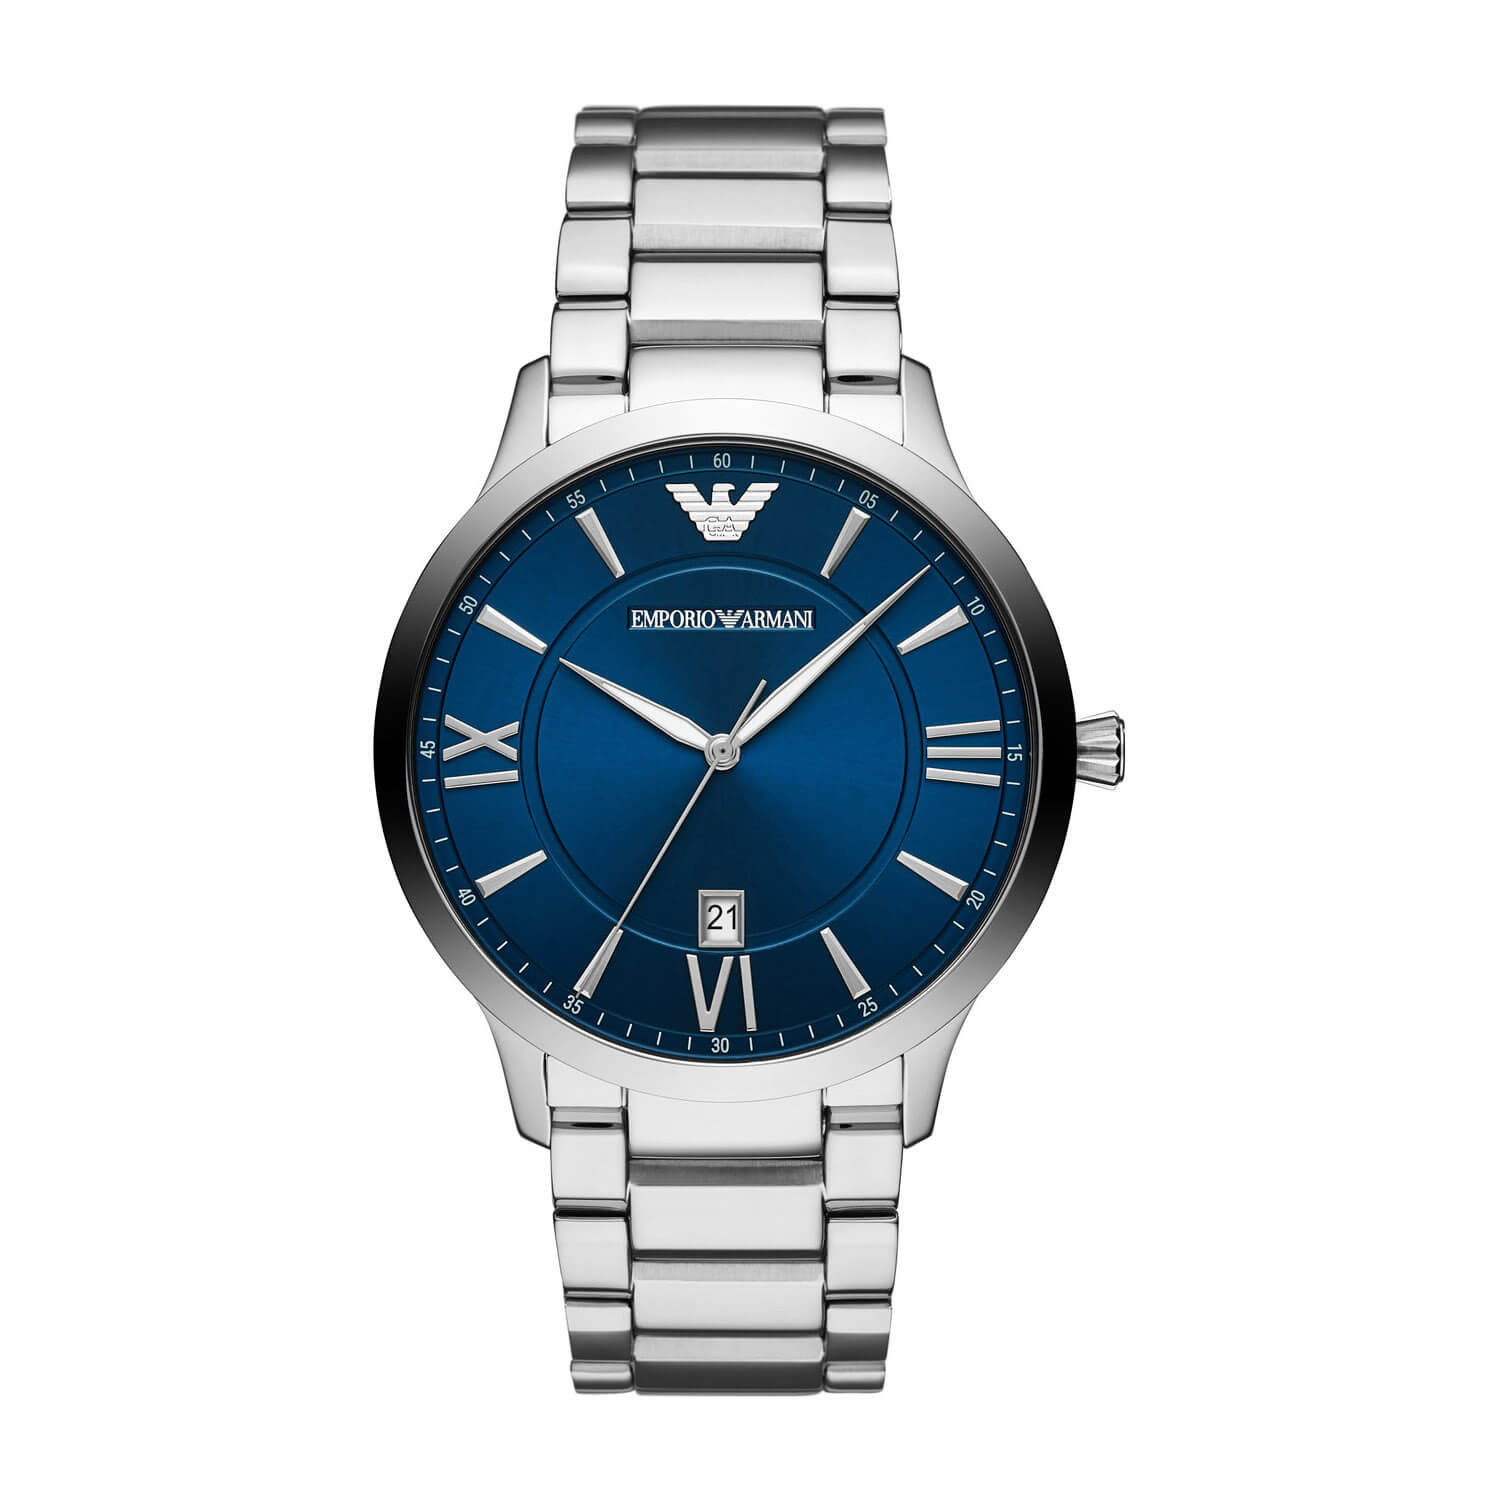 Emporio Armani Blue Dial & Stainless Steel 44mm Watch